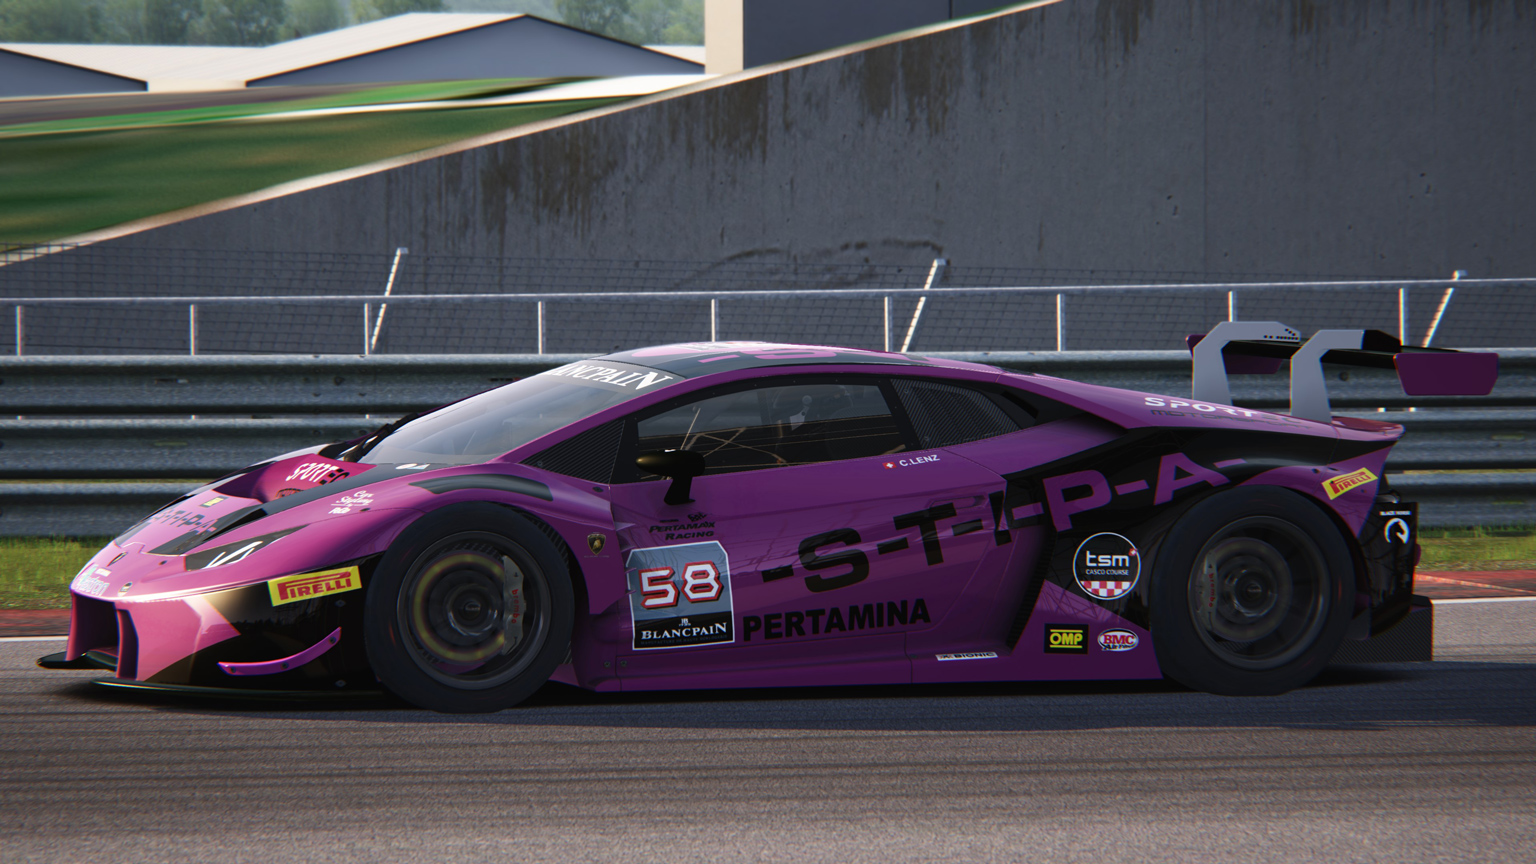 Screenshot_ks_lamborghini_huracan_gt3_silverstone-international_4-11-115-1-0-50.jpg